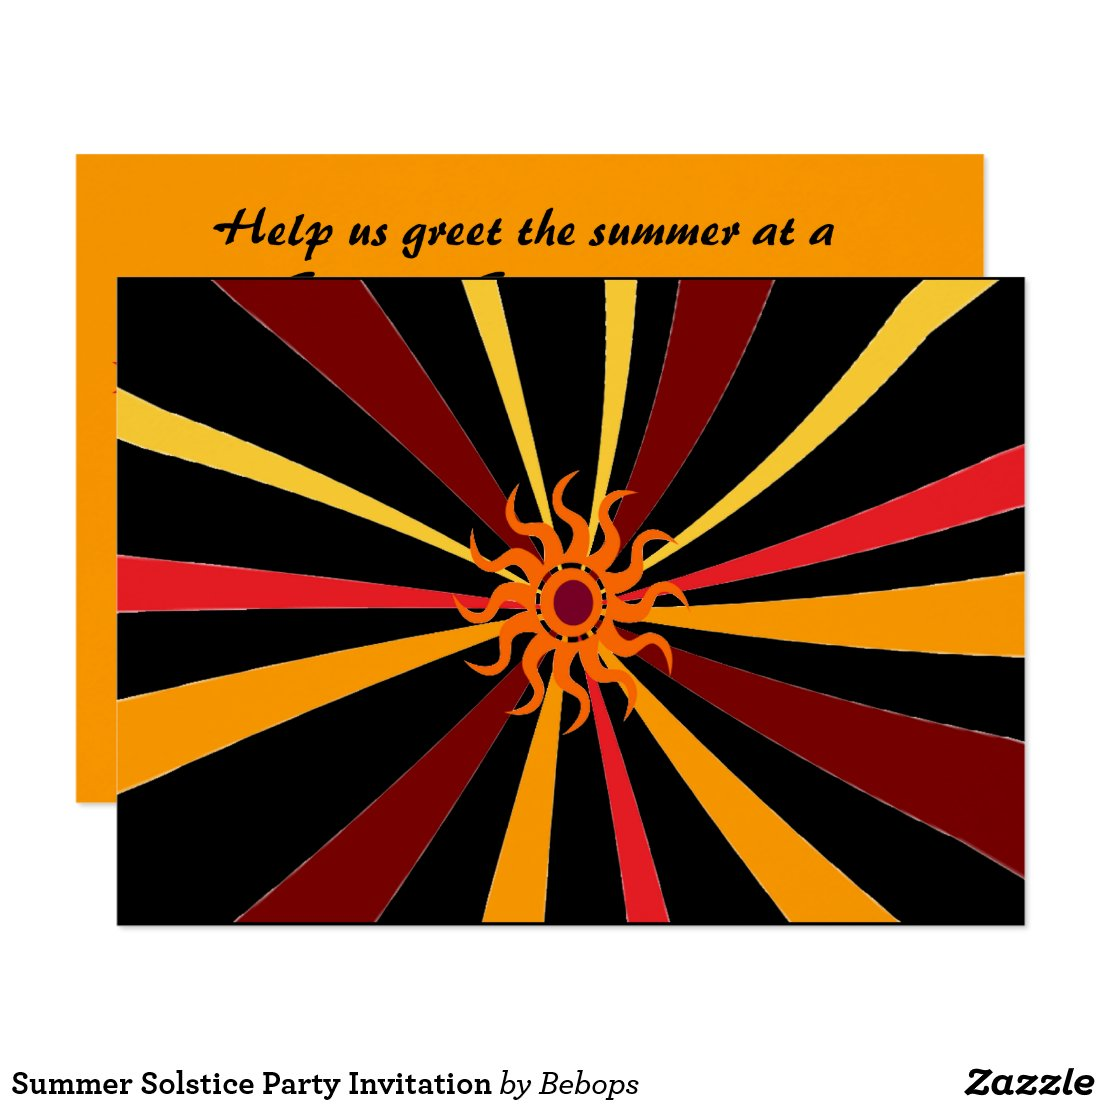 Summer Solstice Party Invitation